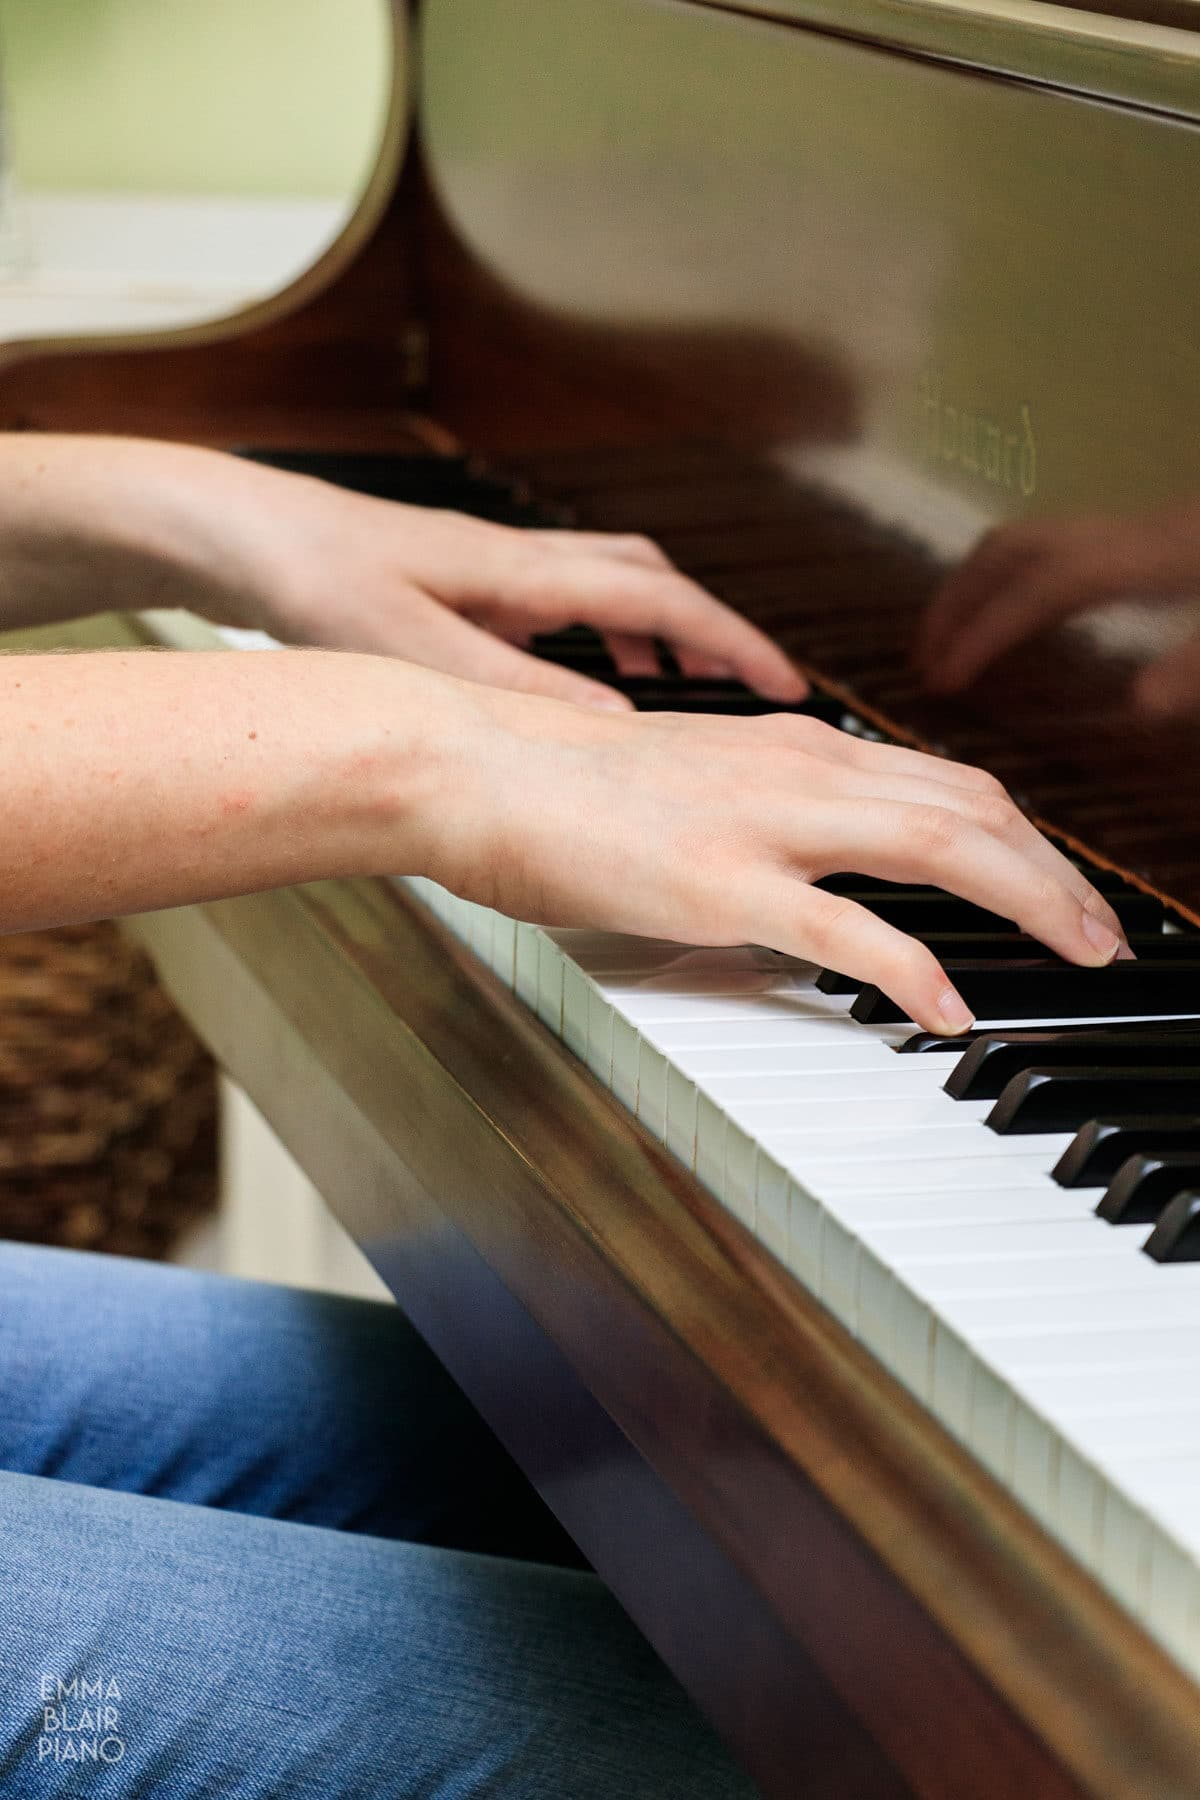 closeup of a teenage girl's hands as she plays the piano